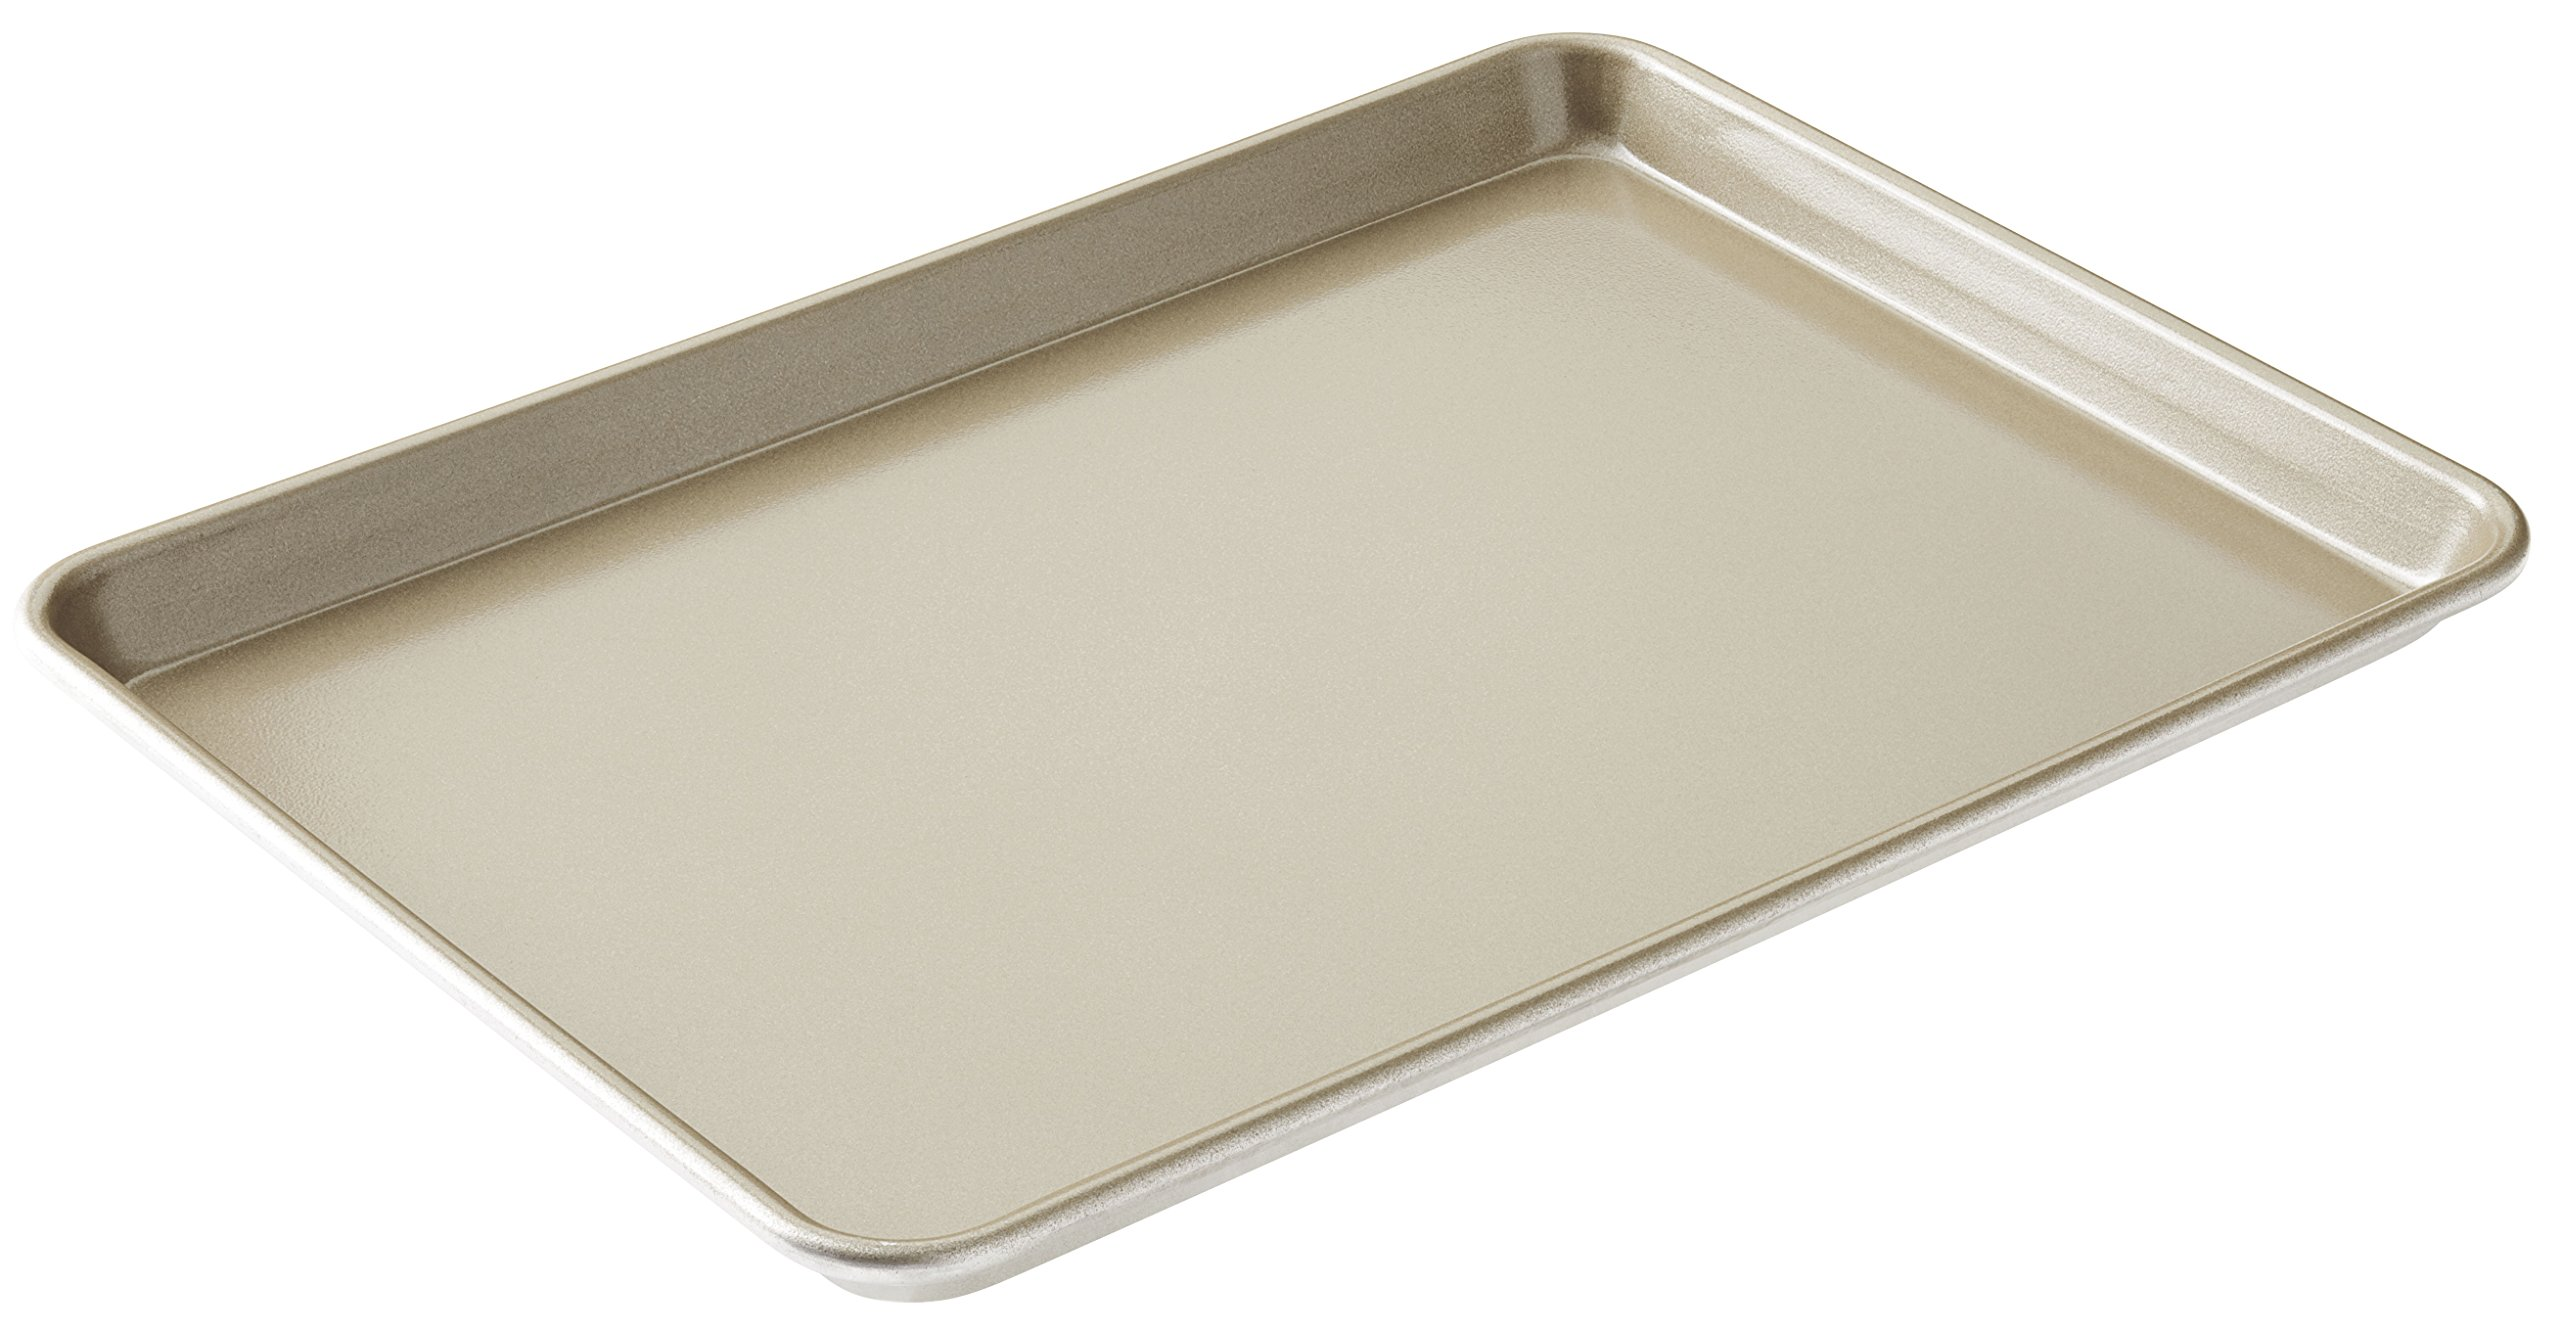 American Kitchen Cookware Large Non-Stick Jelly Roll Pan